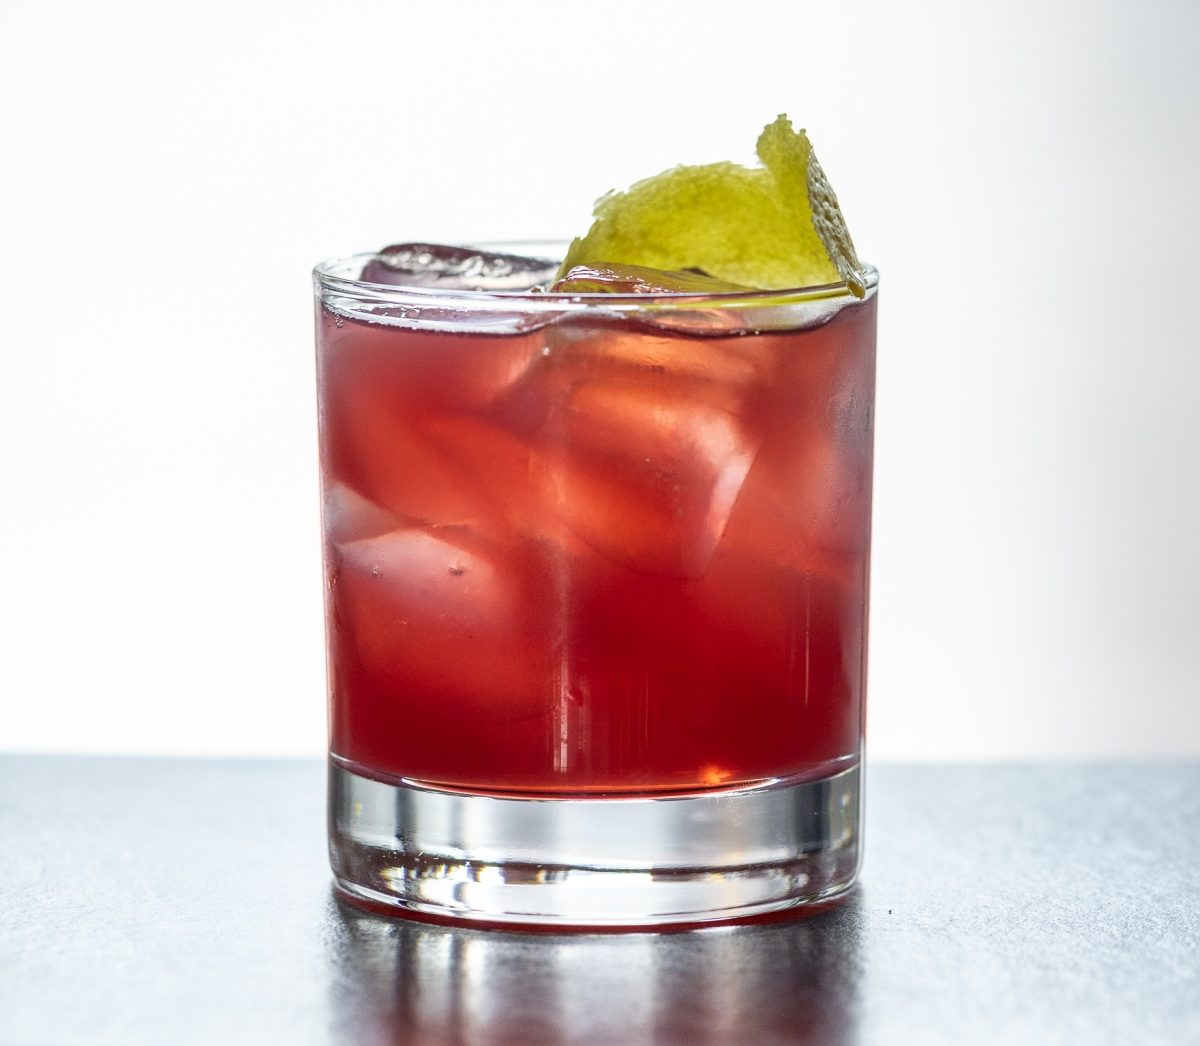 09-2019_OTOTO_Cocktail_Final Images_Web-Res_23